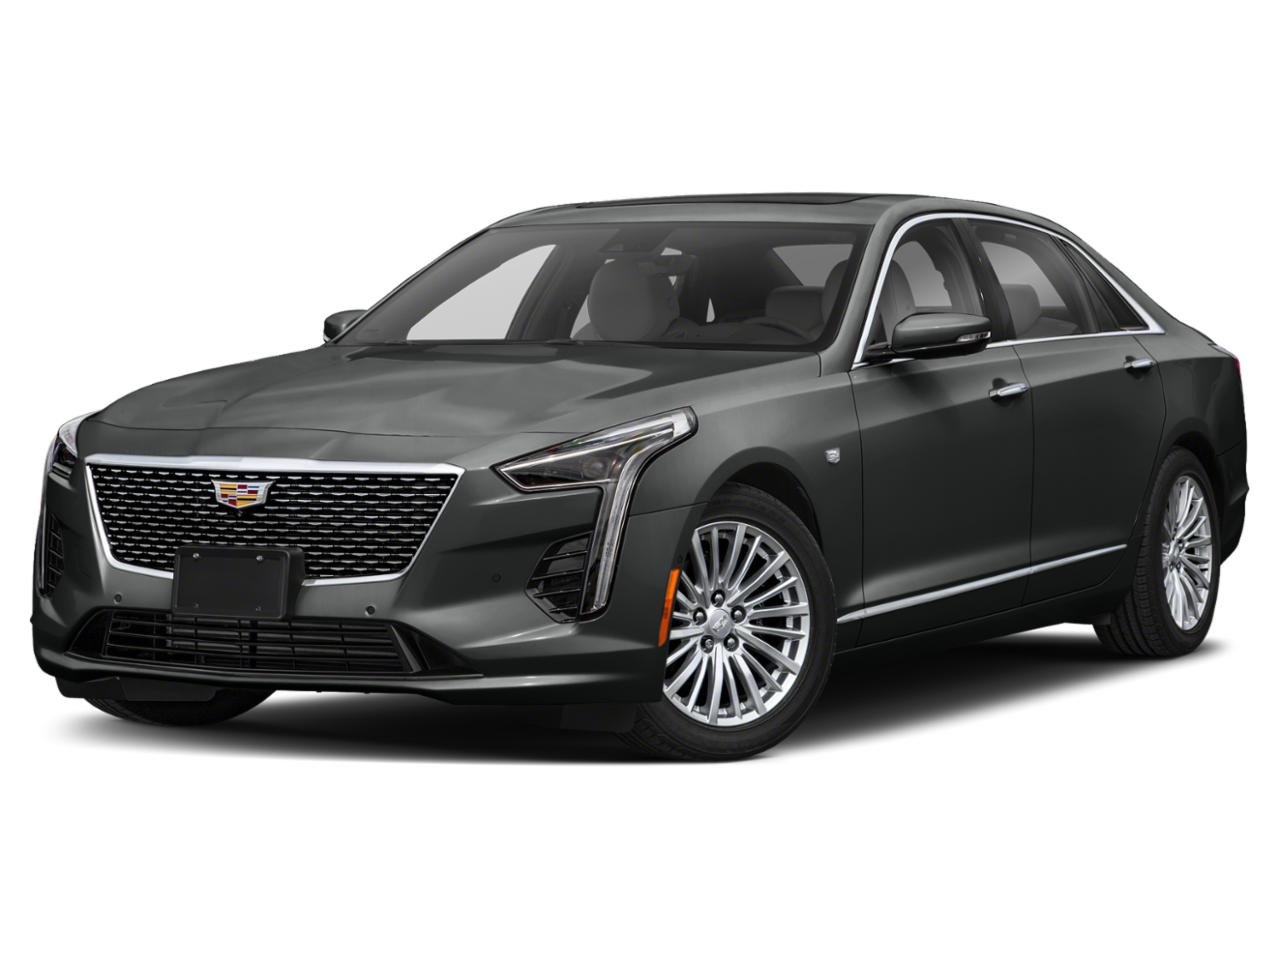 2020 Cadillac CT6 Vehicle Photo in San Antonio, TX 78230